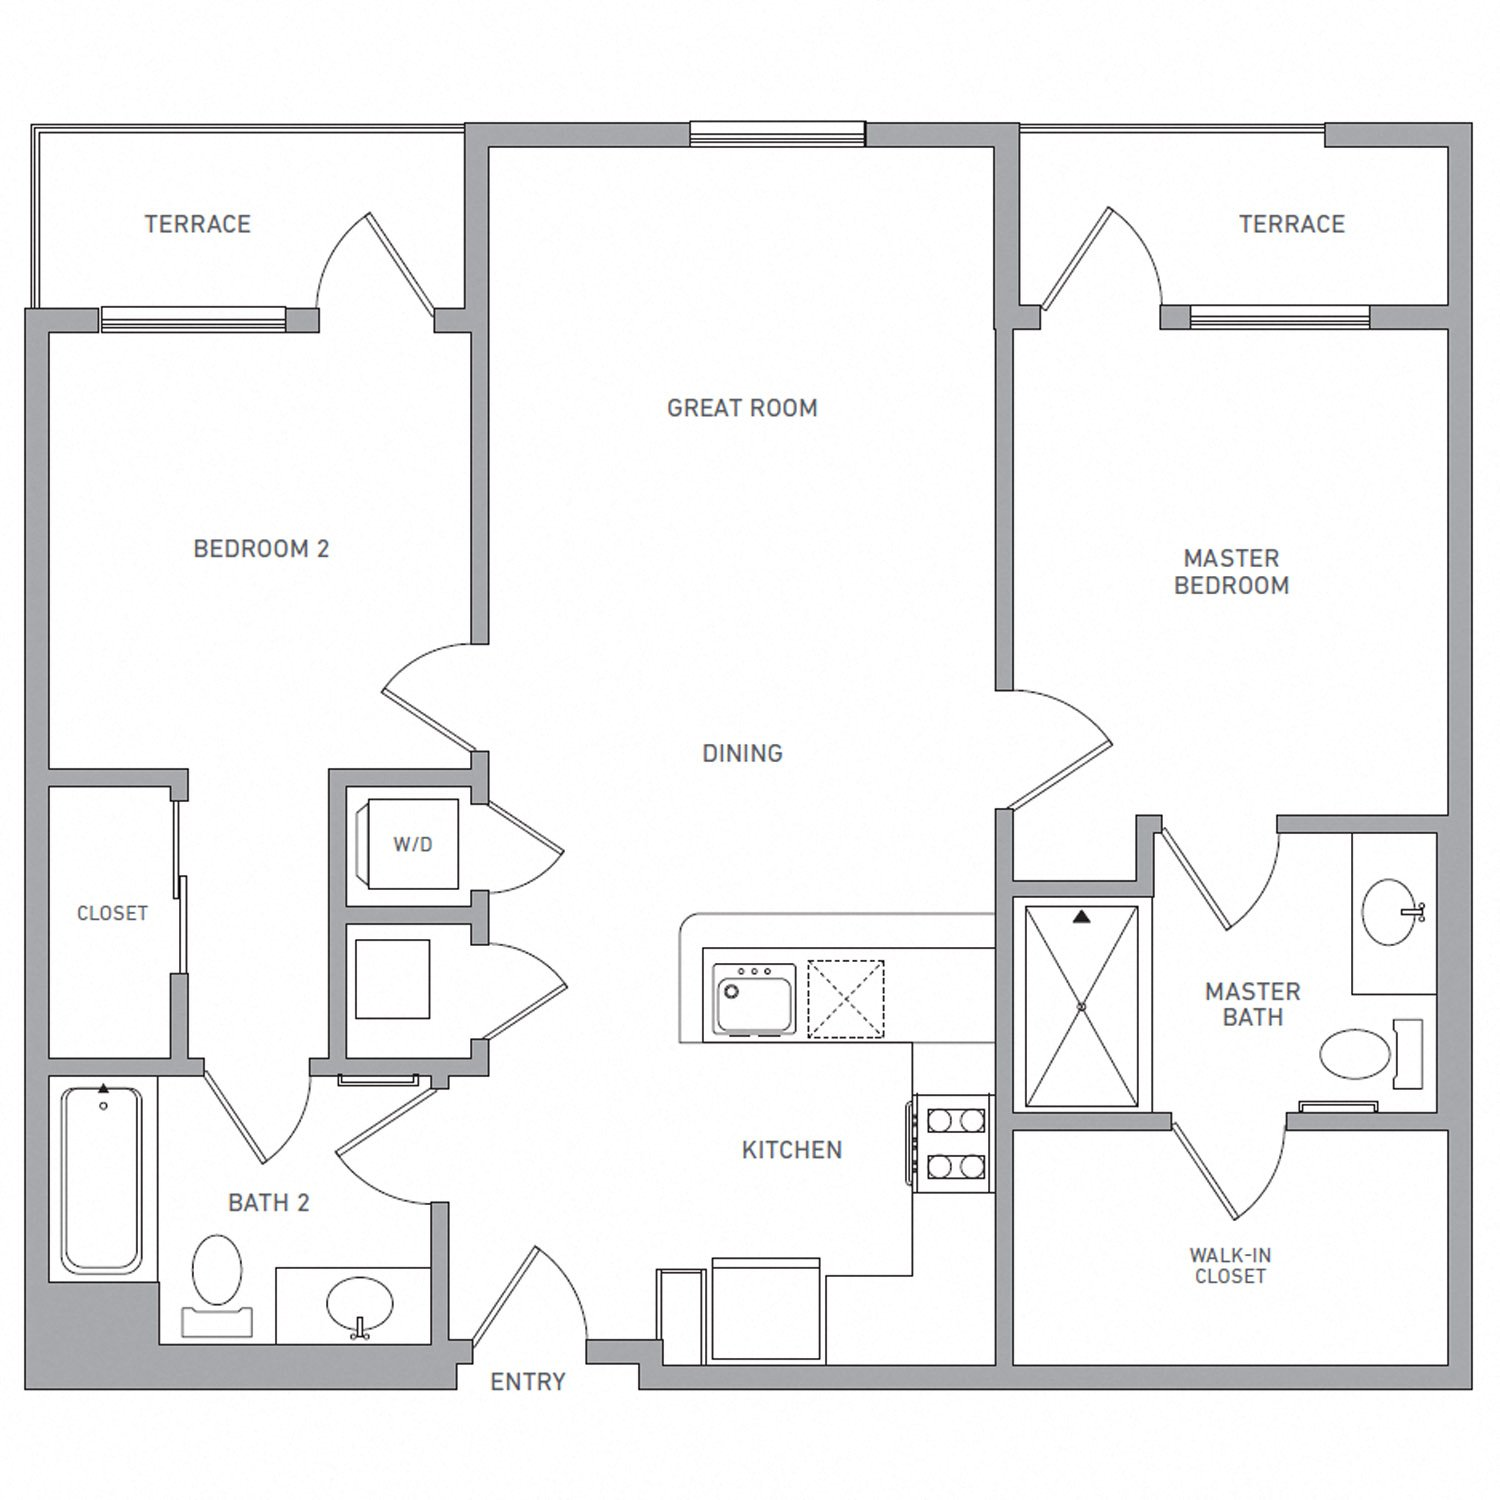 B Three A floor plan diagram. Two bedrooms, two bathrooms, an open kitchen and living area, two terraces, and a washer dryer.